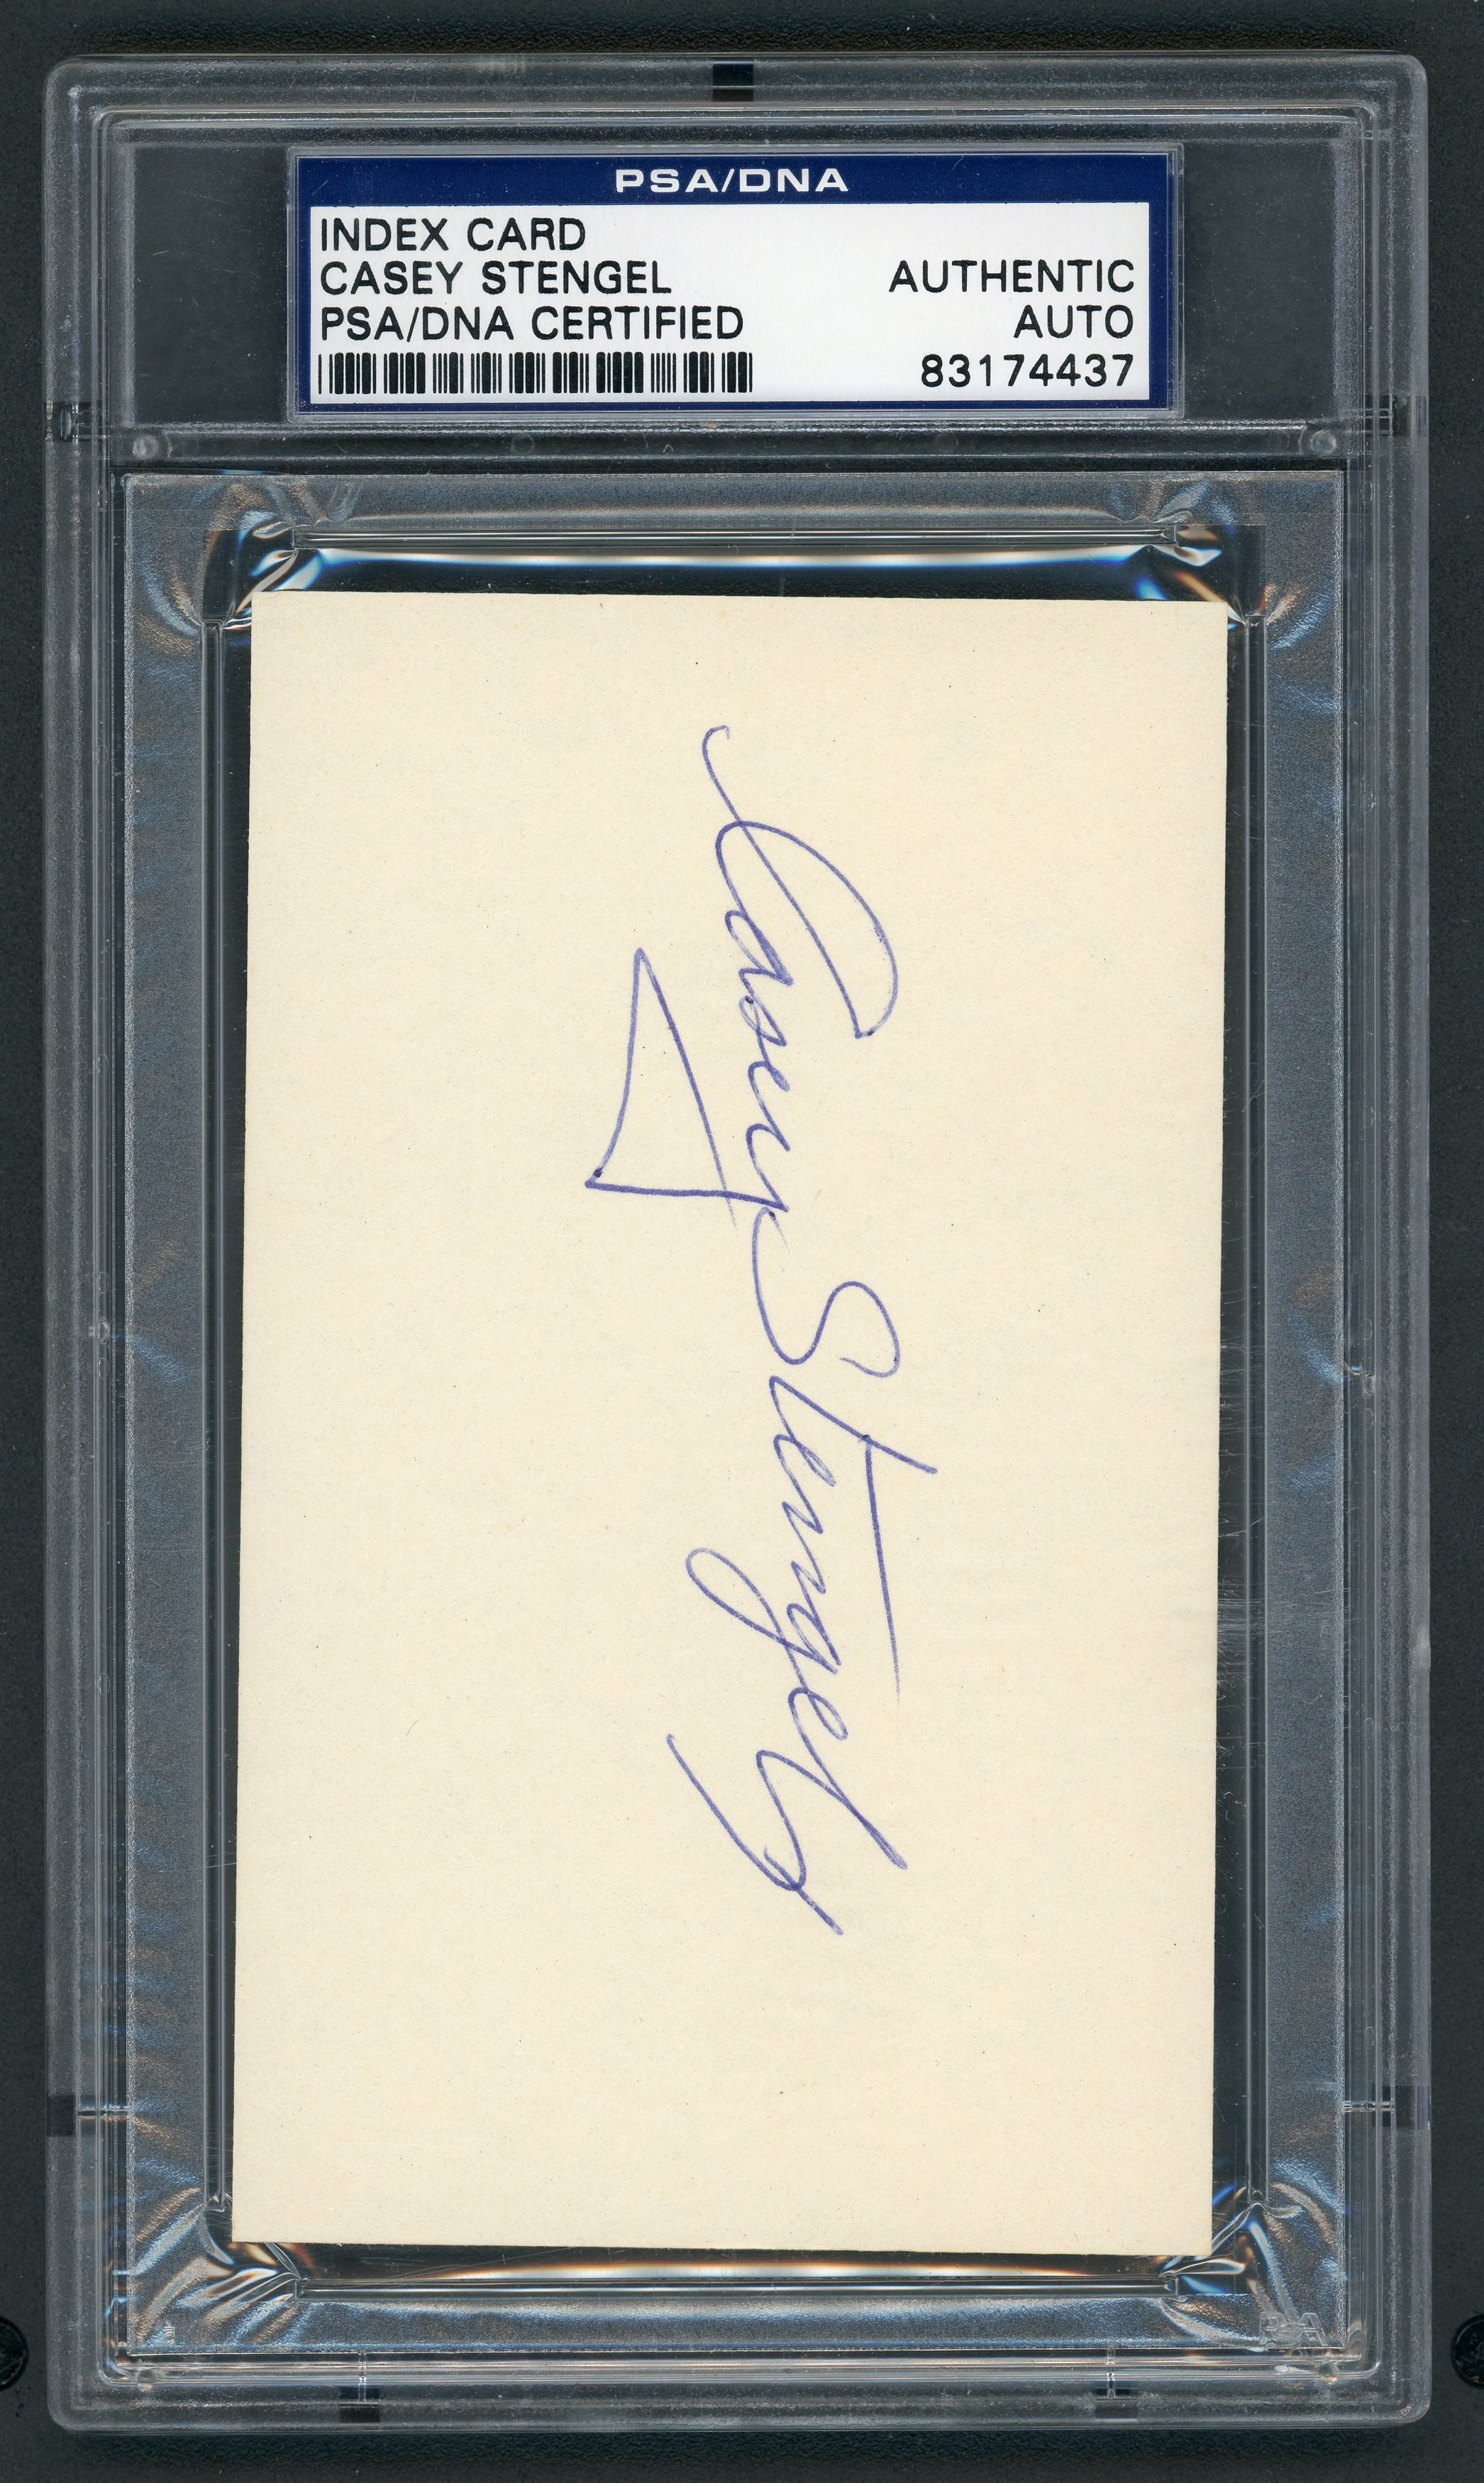 Mint Casey Stengel Signed Index Card (PSA/DNA)